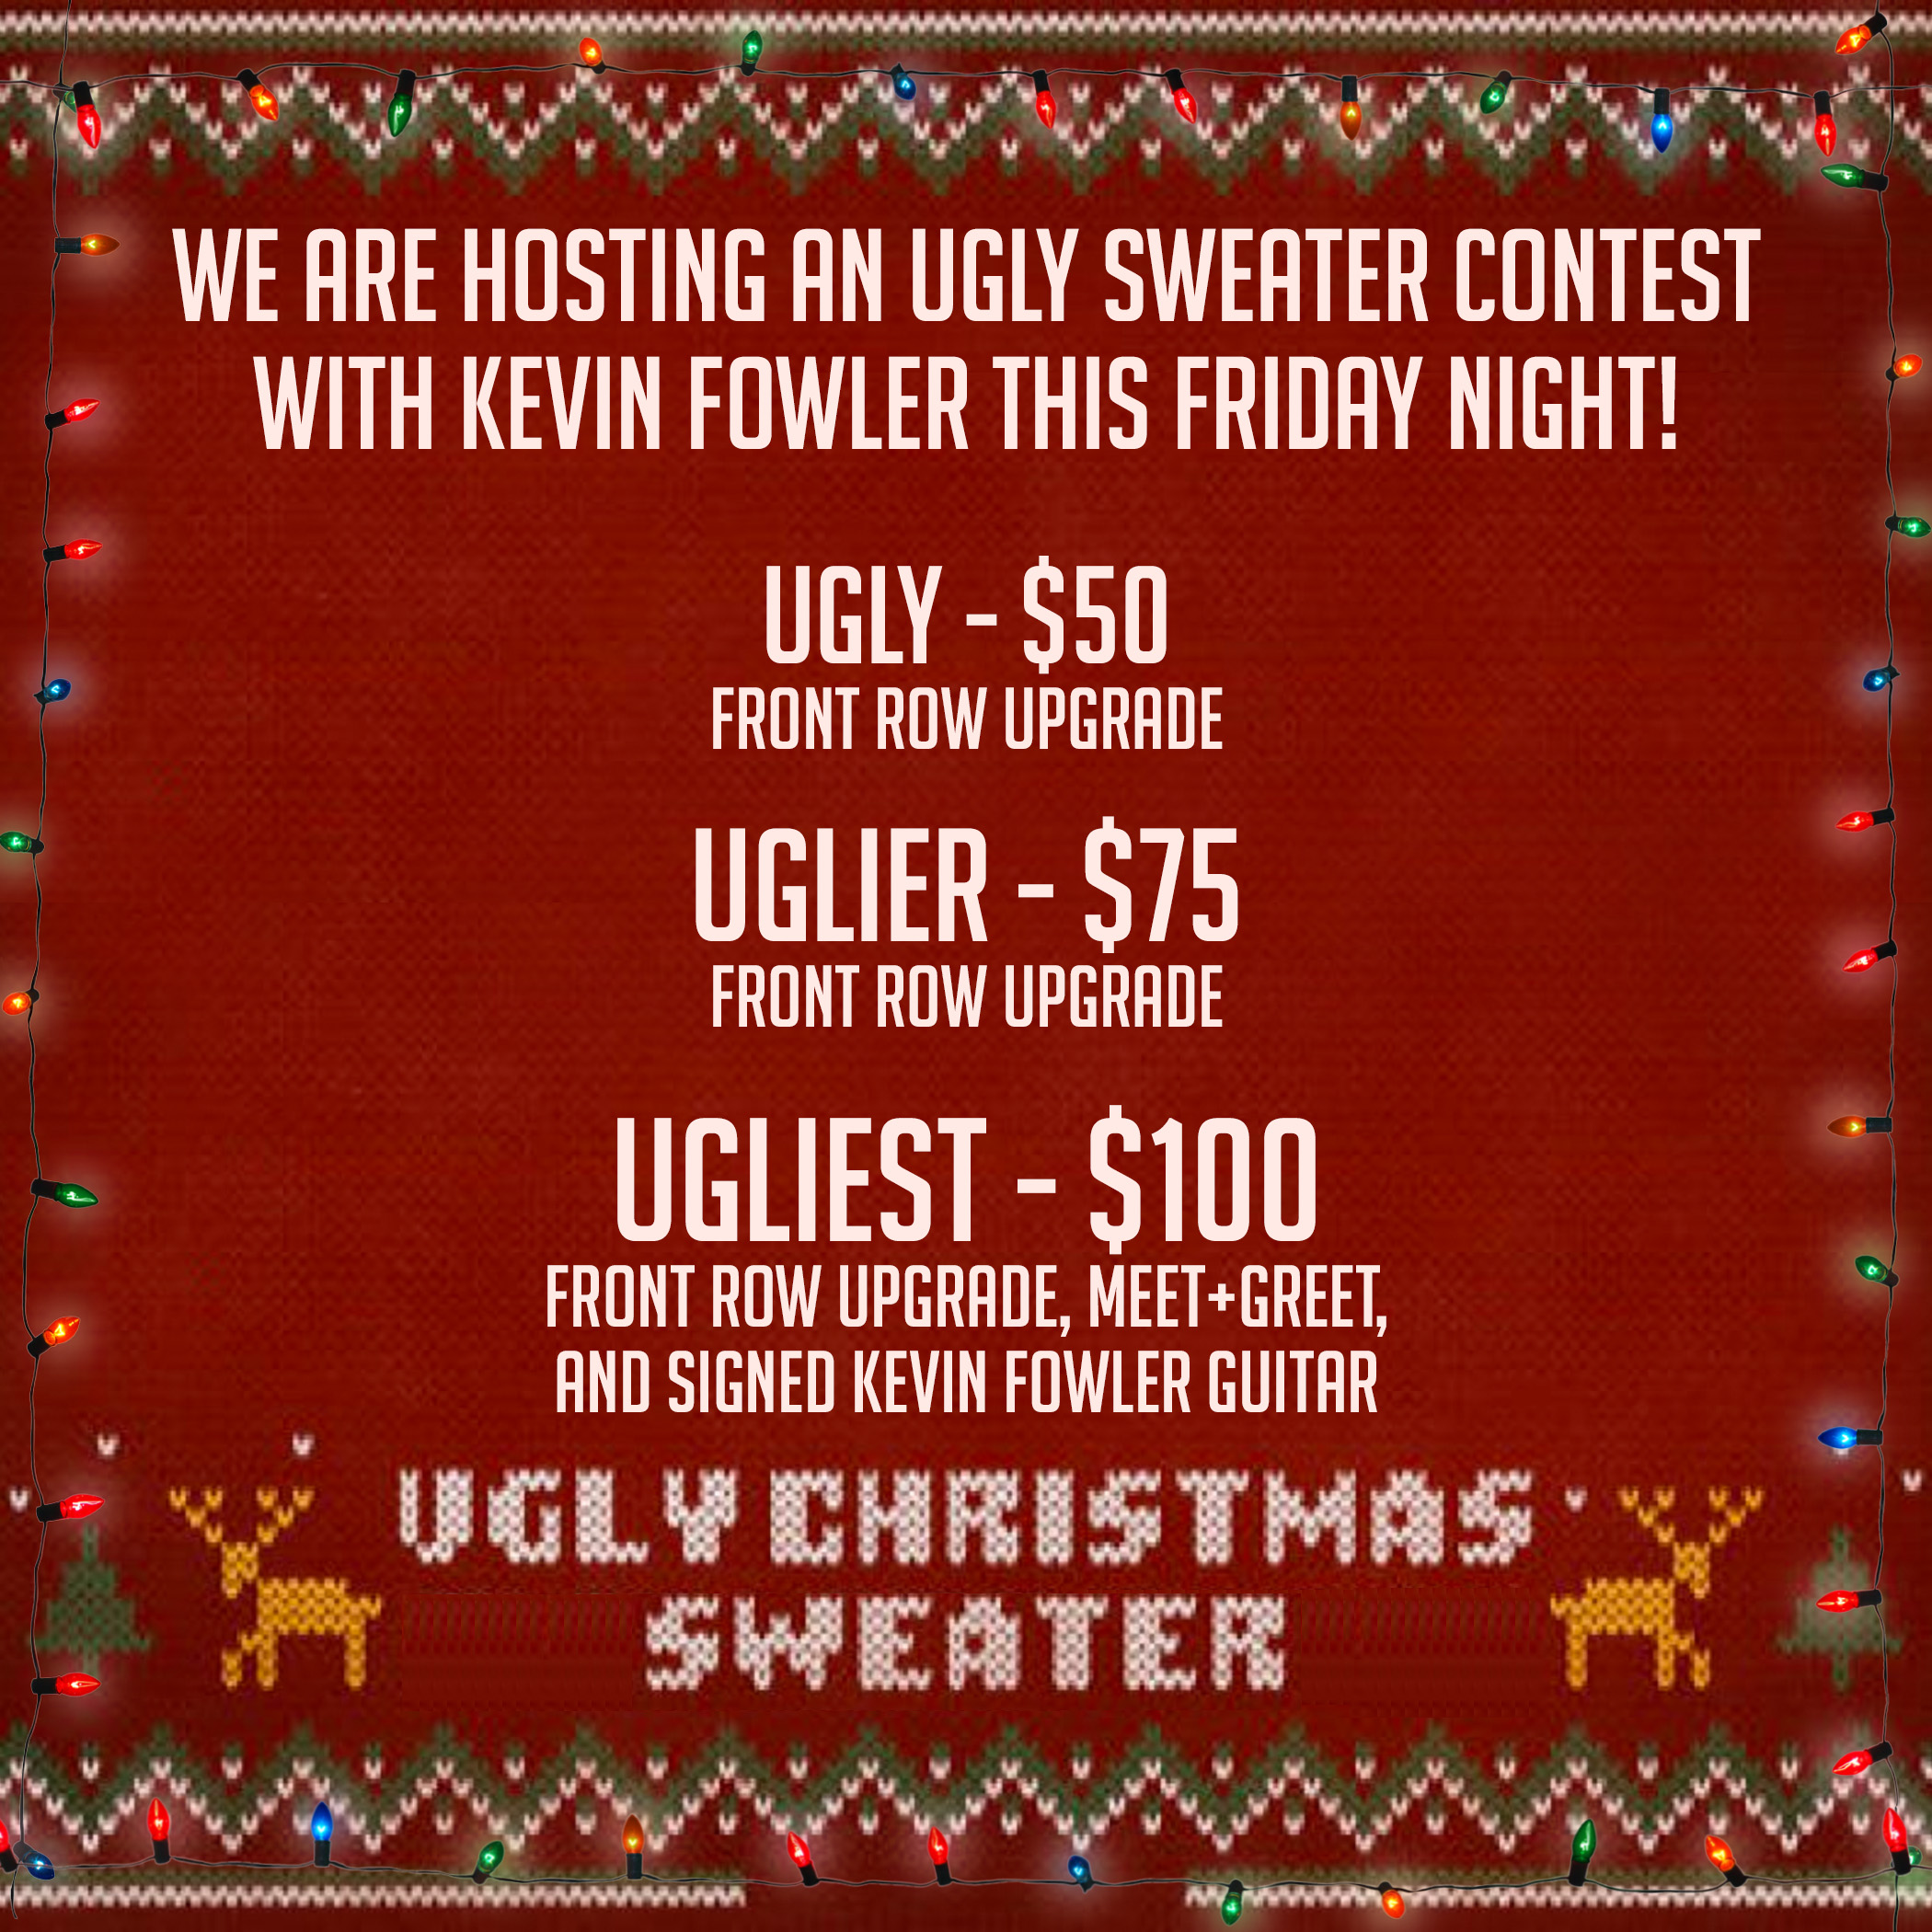 We are hosting an ugly Christmas Sweater Contest with Kevin Fowler this Friday Night! Ugly - $50 Front Row Upgrade,  Uglier - $75 Front Row Upgrade  Ugliest - $100 Front Row Upgrade, Meet+Greet, & signed Kevin Fowler guitar